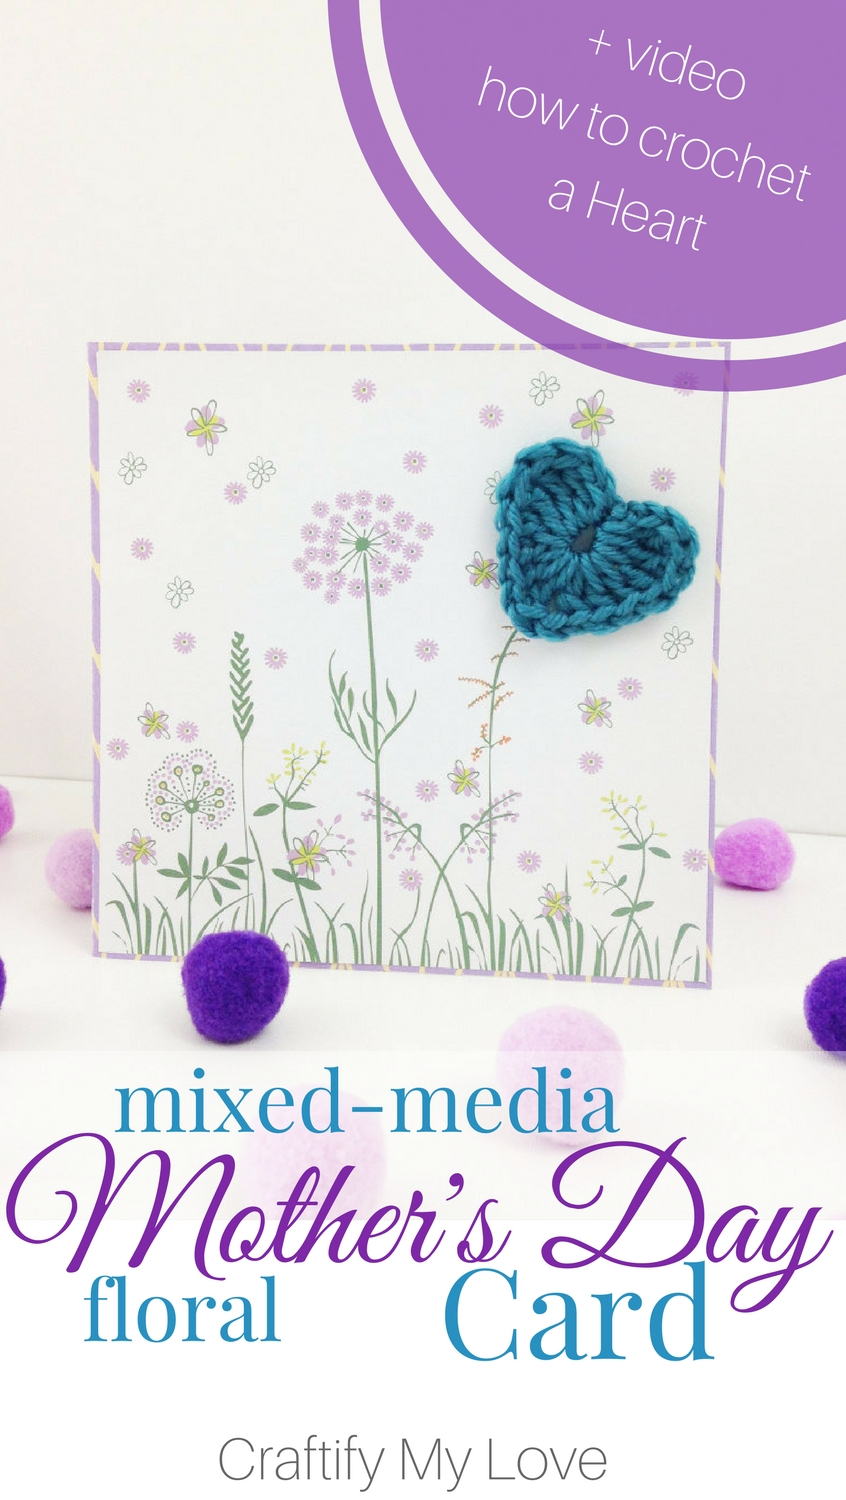 Super easy tutorial for a absolutely darling mixed media Mother's Day card that is made in literally no time at all. Very detailed paper crafts directions and even includes a video on how to crochet that heart. | #mixedmedia #cardmaking #mothersday #papercrafts #birthdaycard